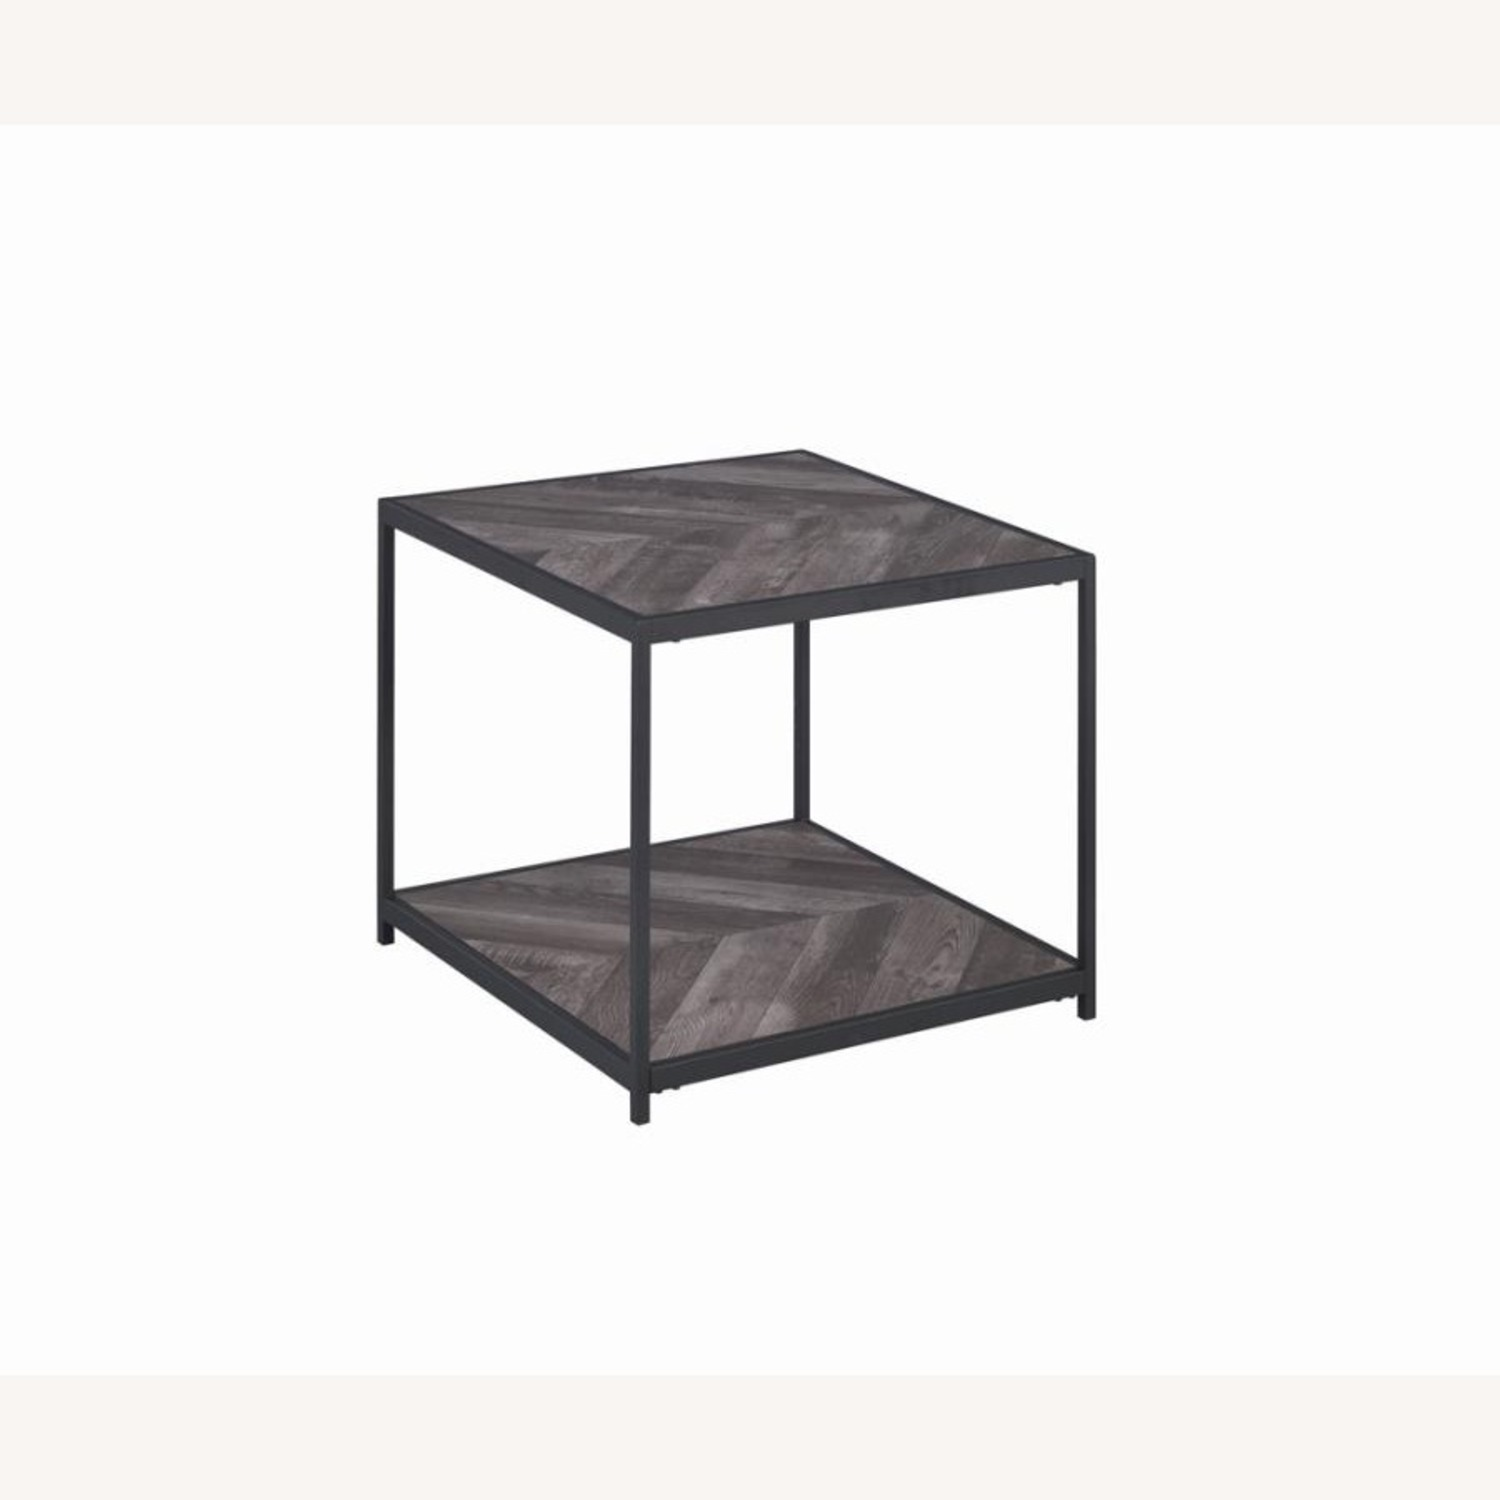 End Table W/ Metal Frame In Sandy Black Finish - image-0